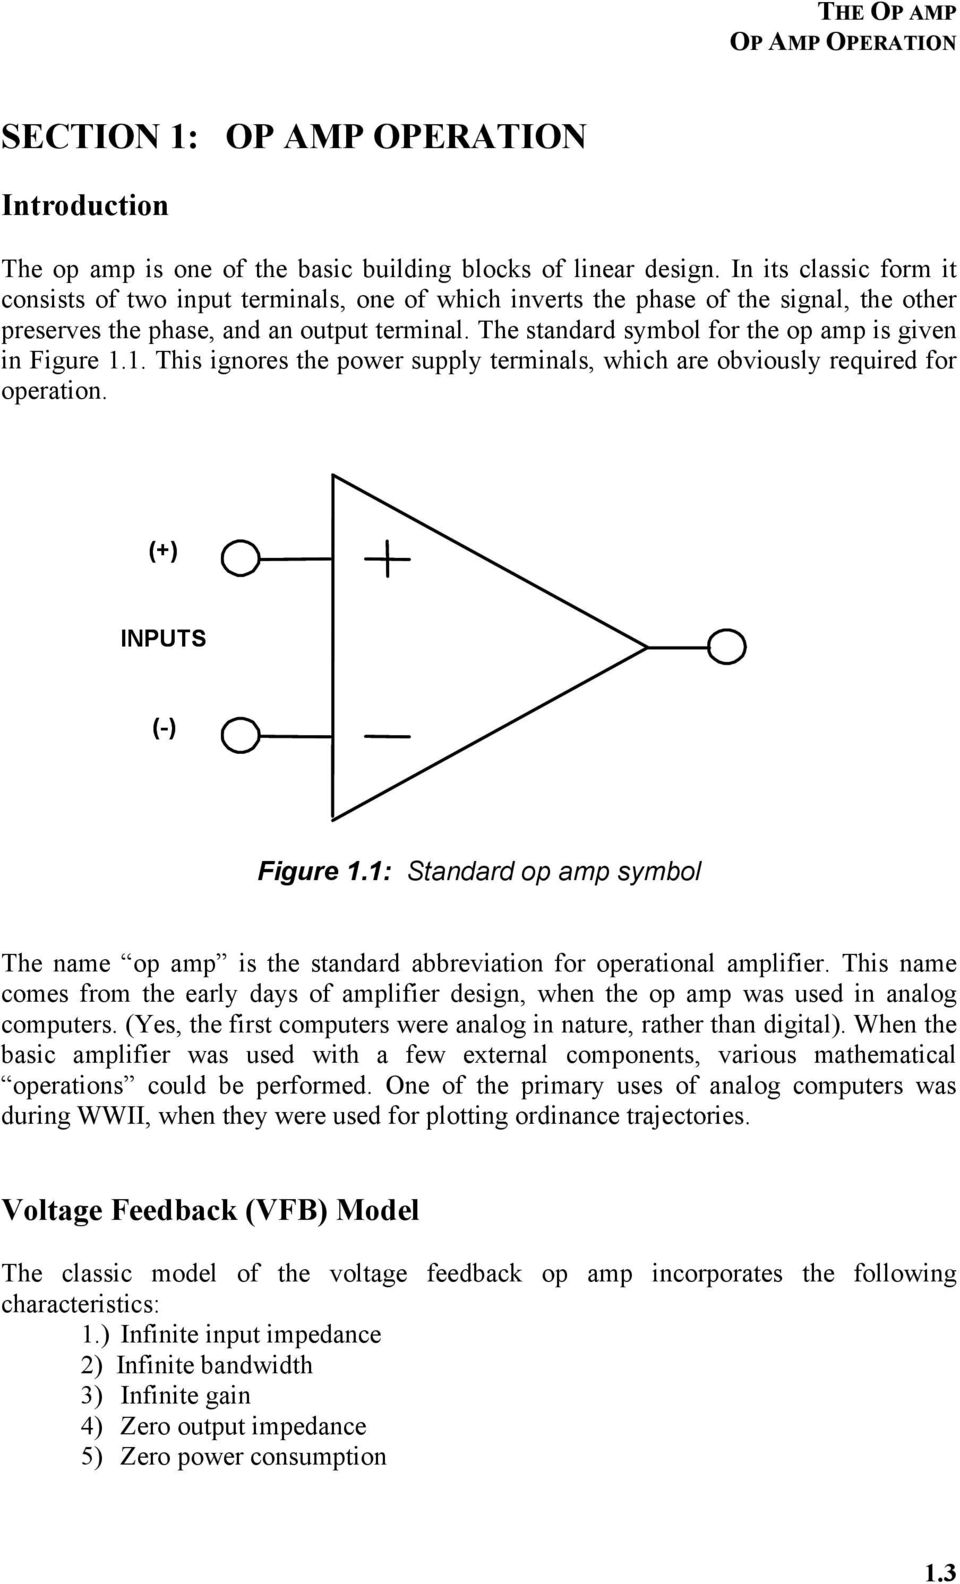 Chapter 1 The Op Amp Pdf 741 Opamp Tutorial Opamps Operational Amplifier Standard Symbol For Is Given In Figure 11 This Ignores